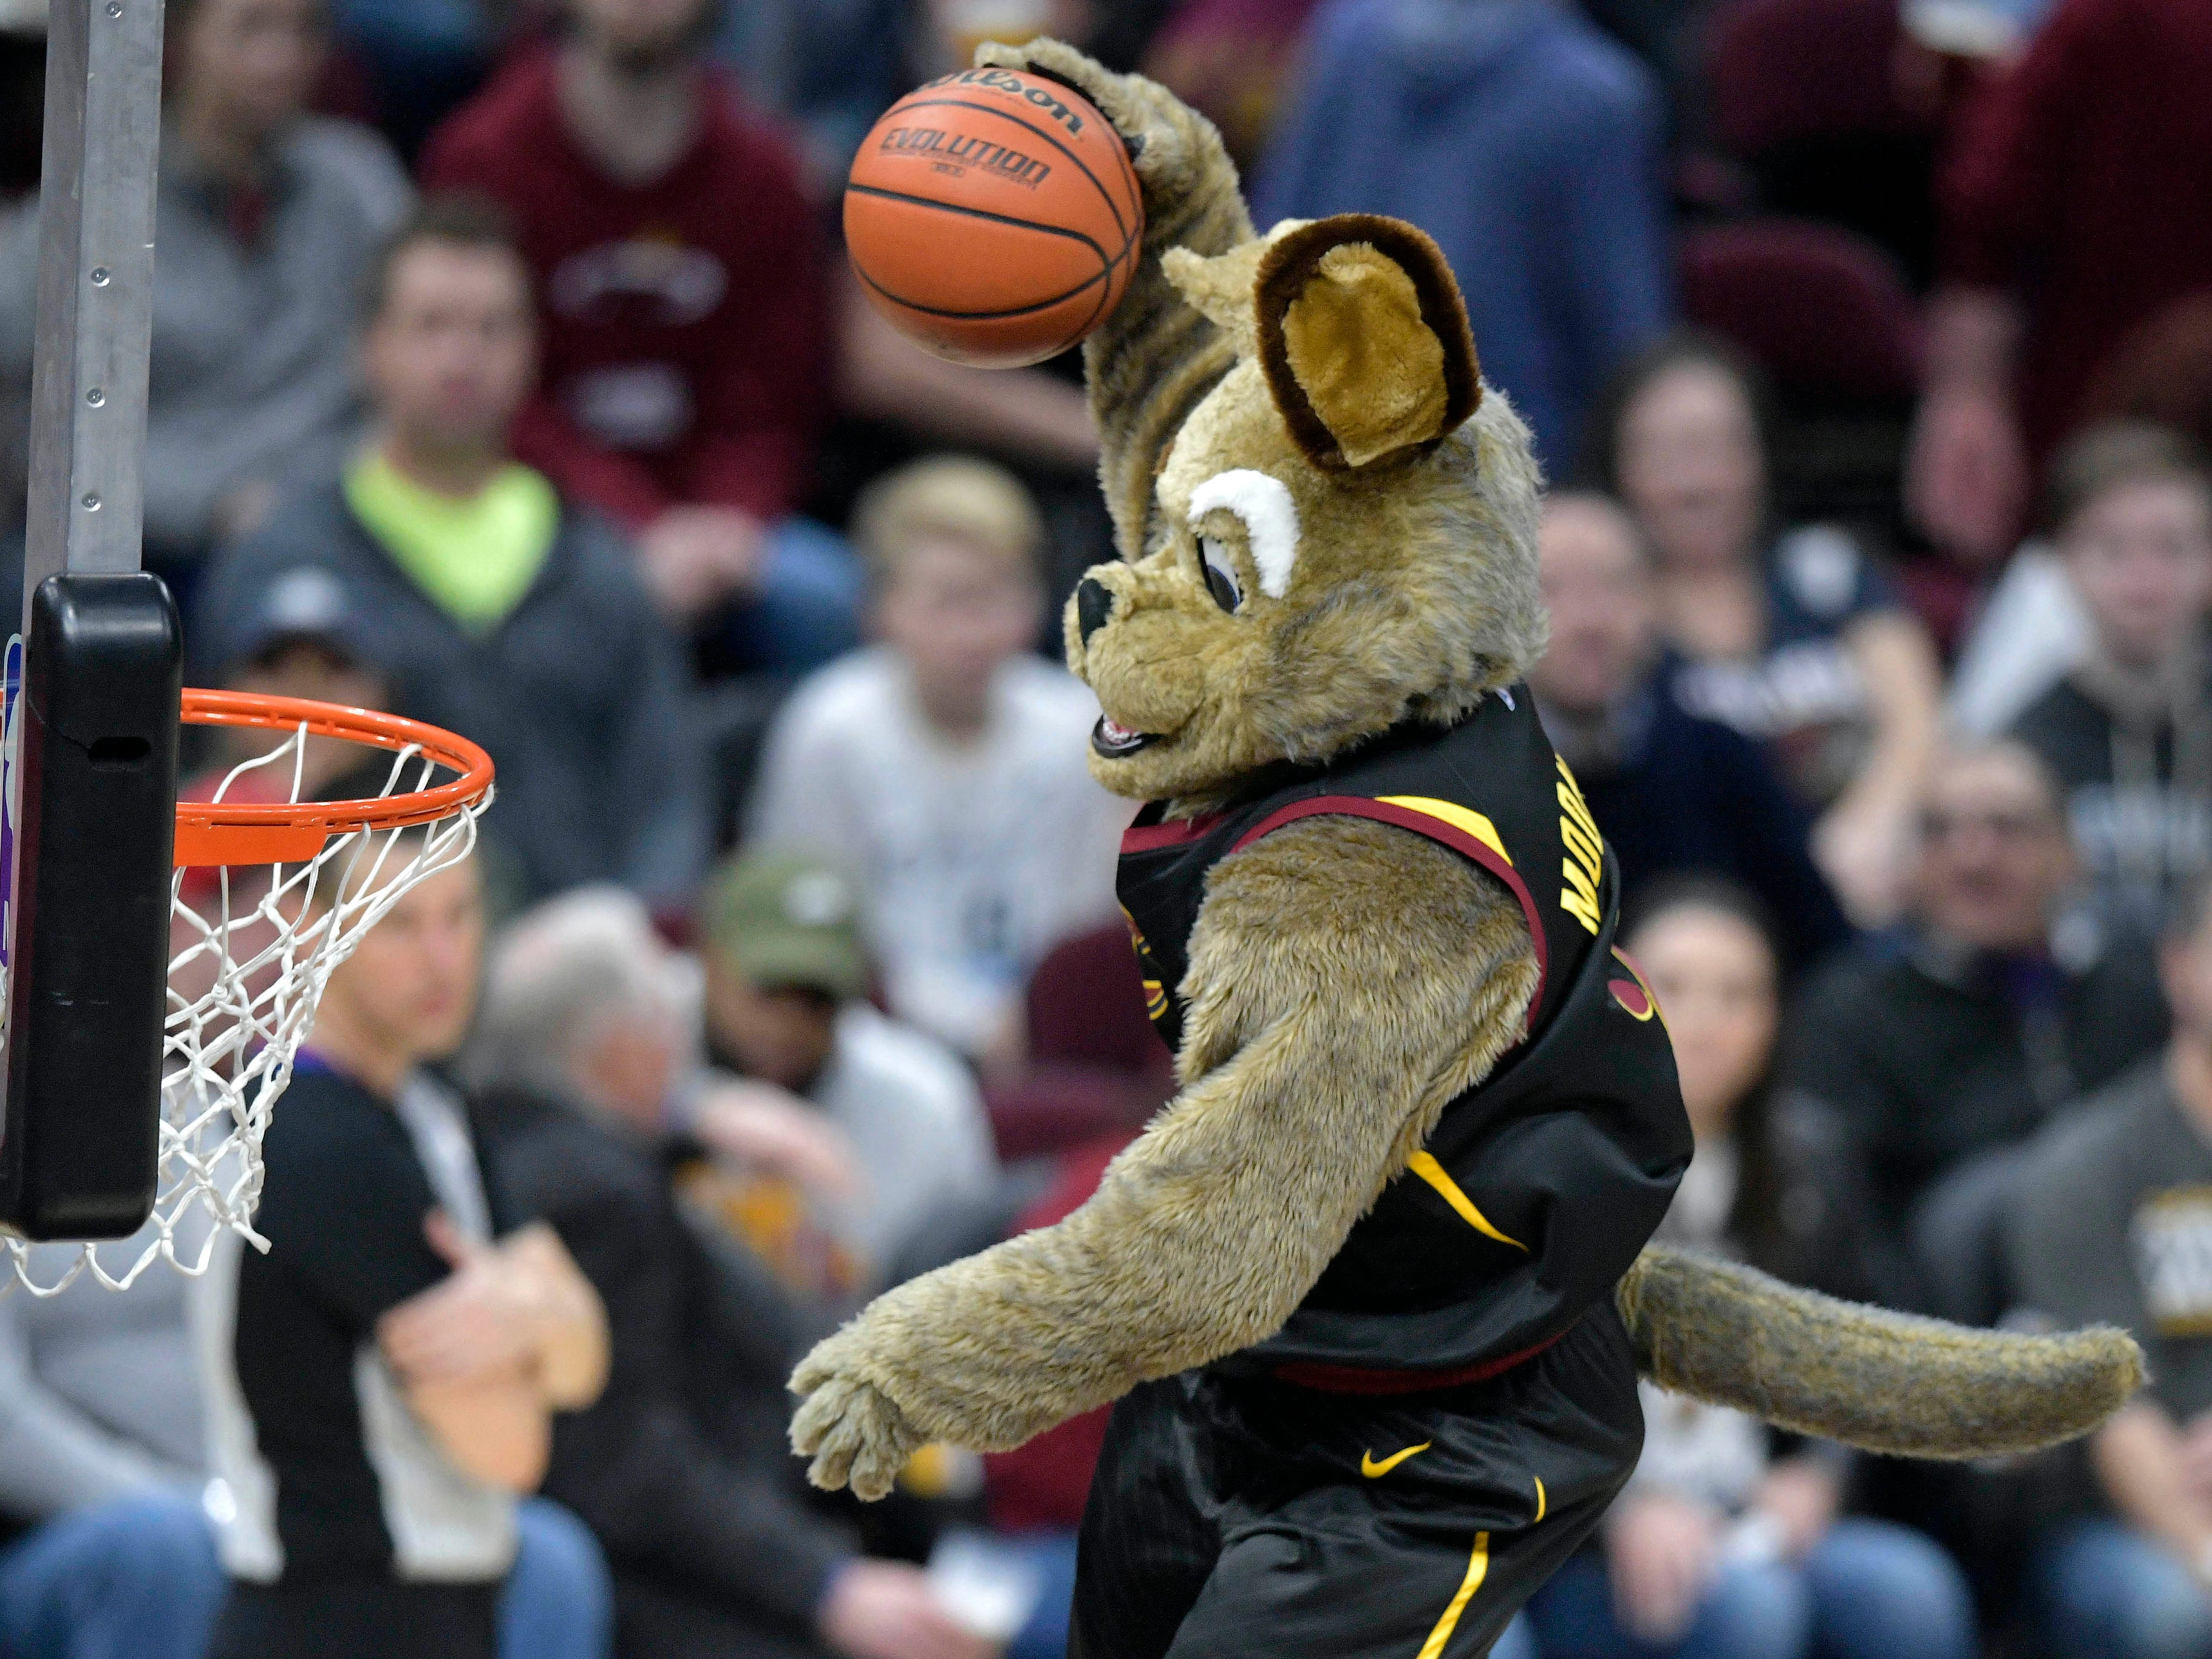 Jan.Cavaliers mascot Moondog entertains the crowd with an acrobatic dunk.